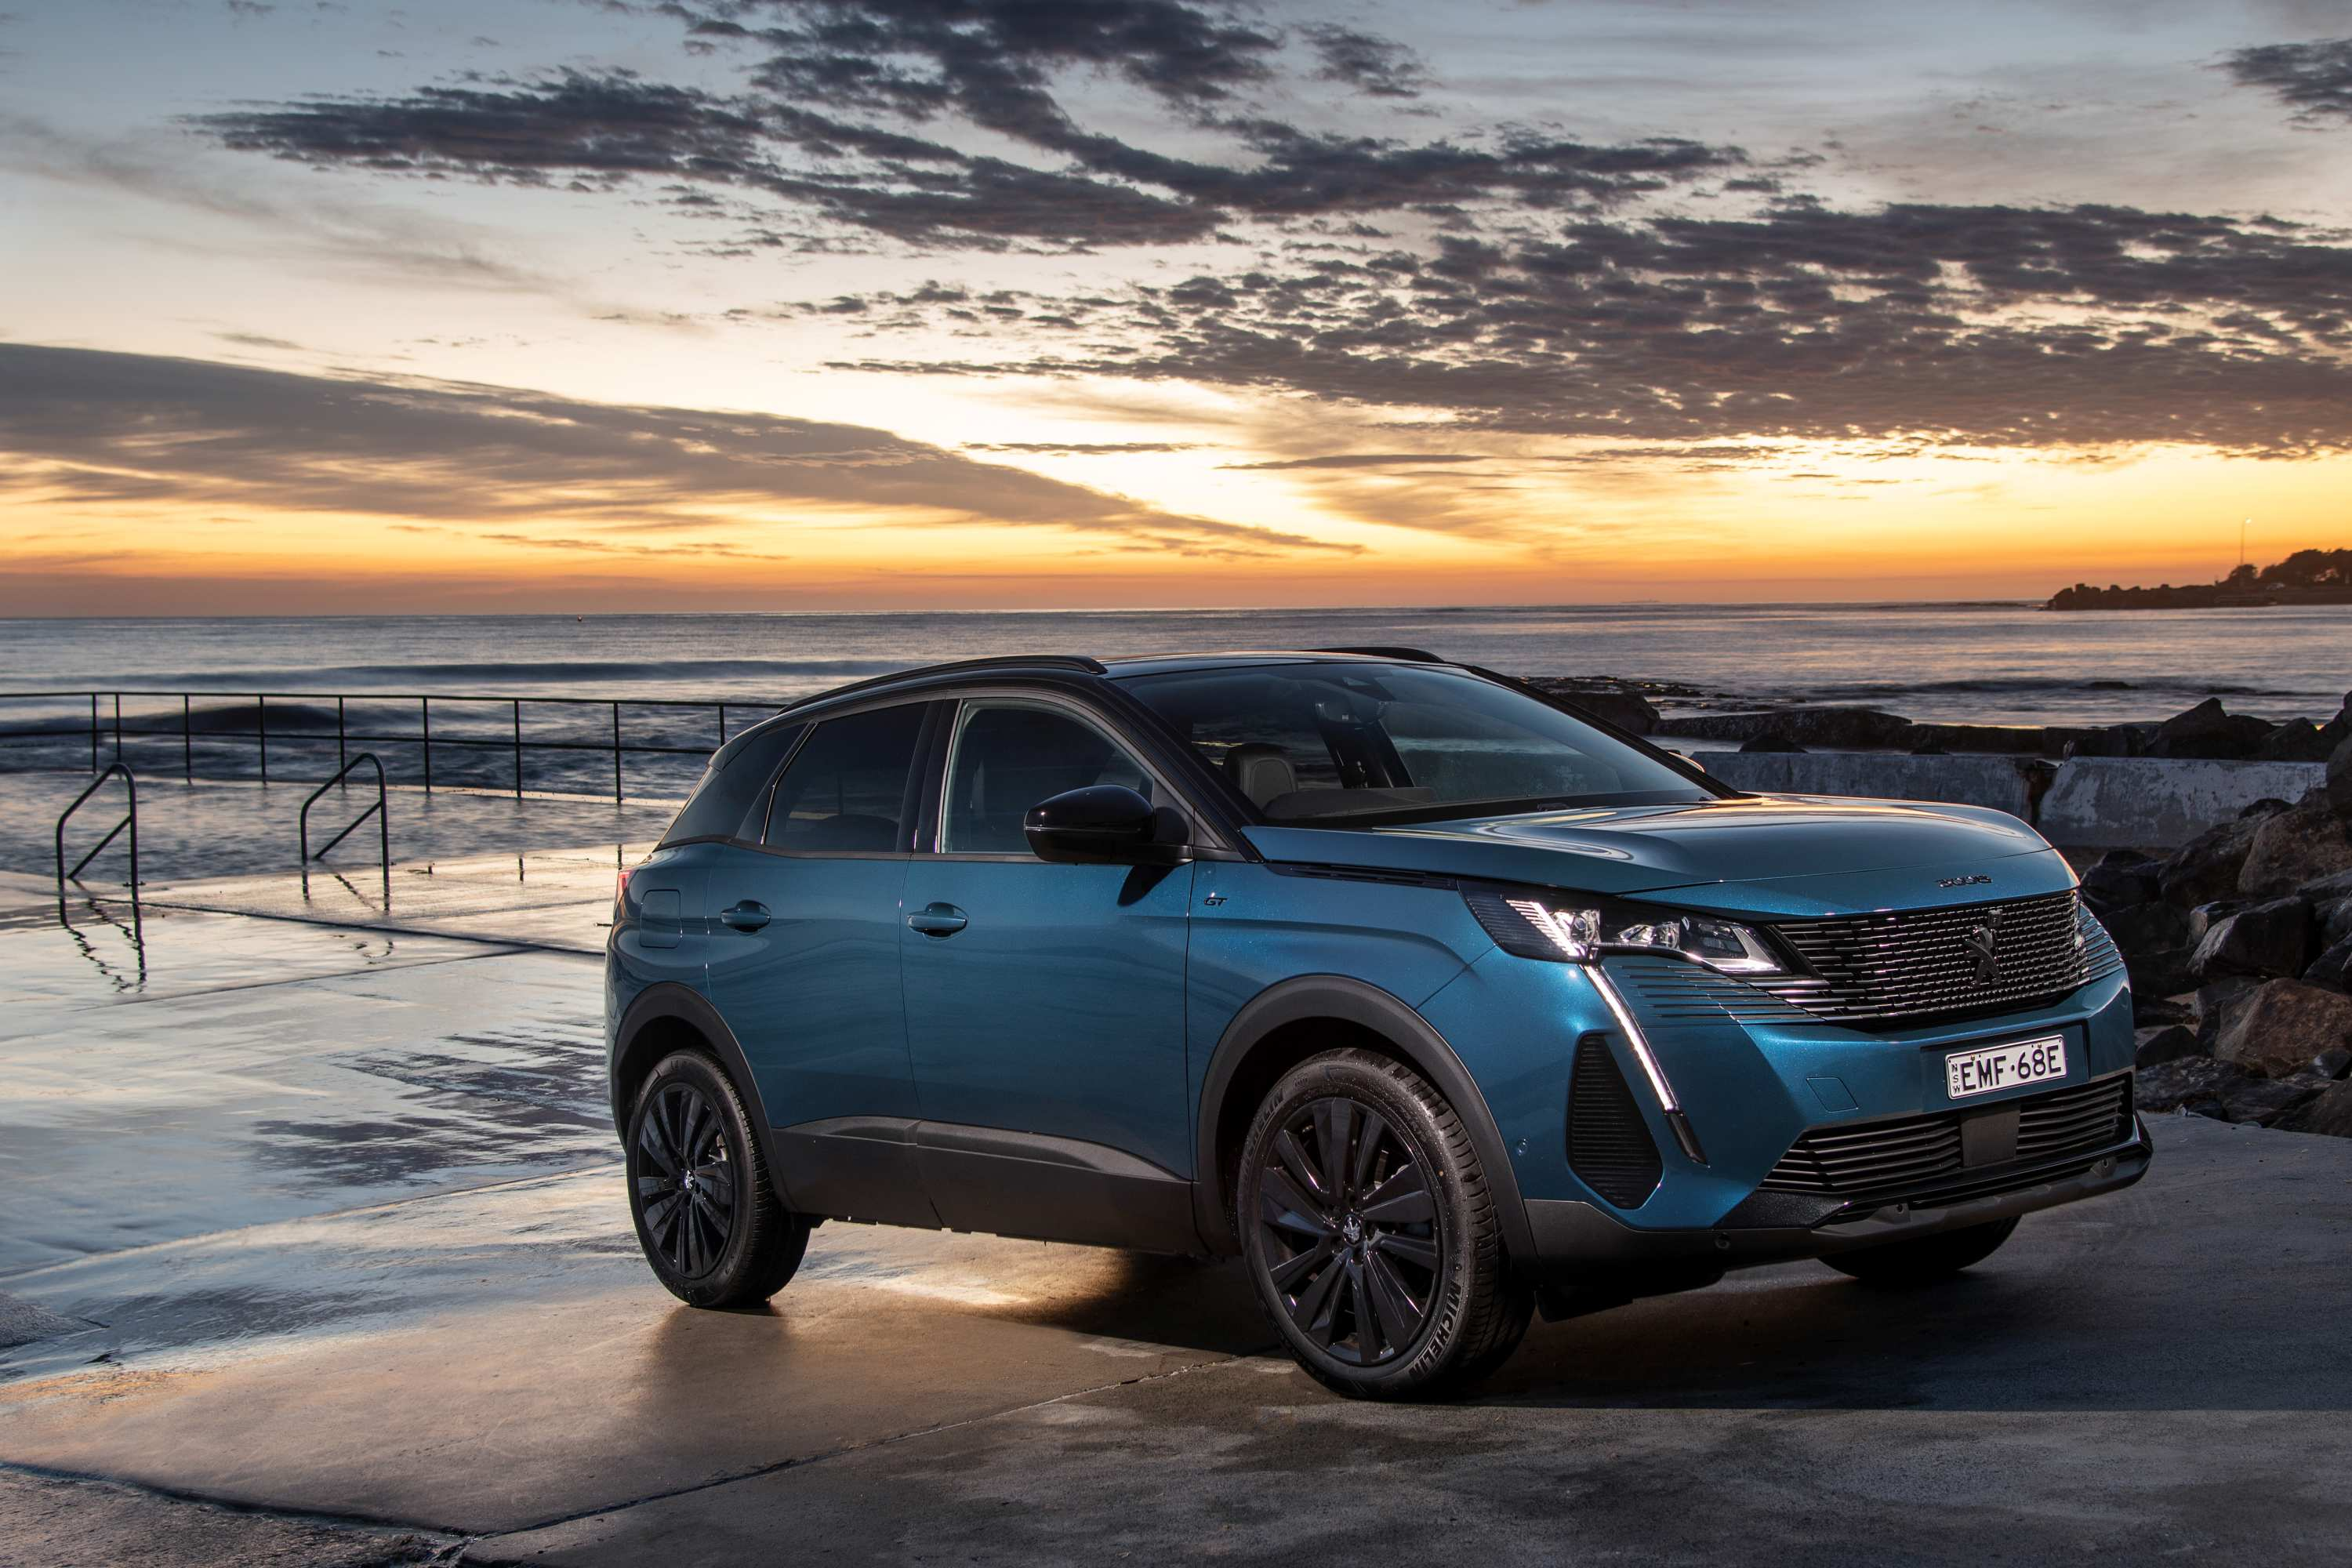 2021 Peugeot 3008 GT Sport. (Photo Narrative Post/Matthias Engesser)